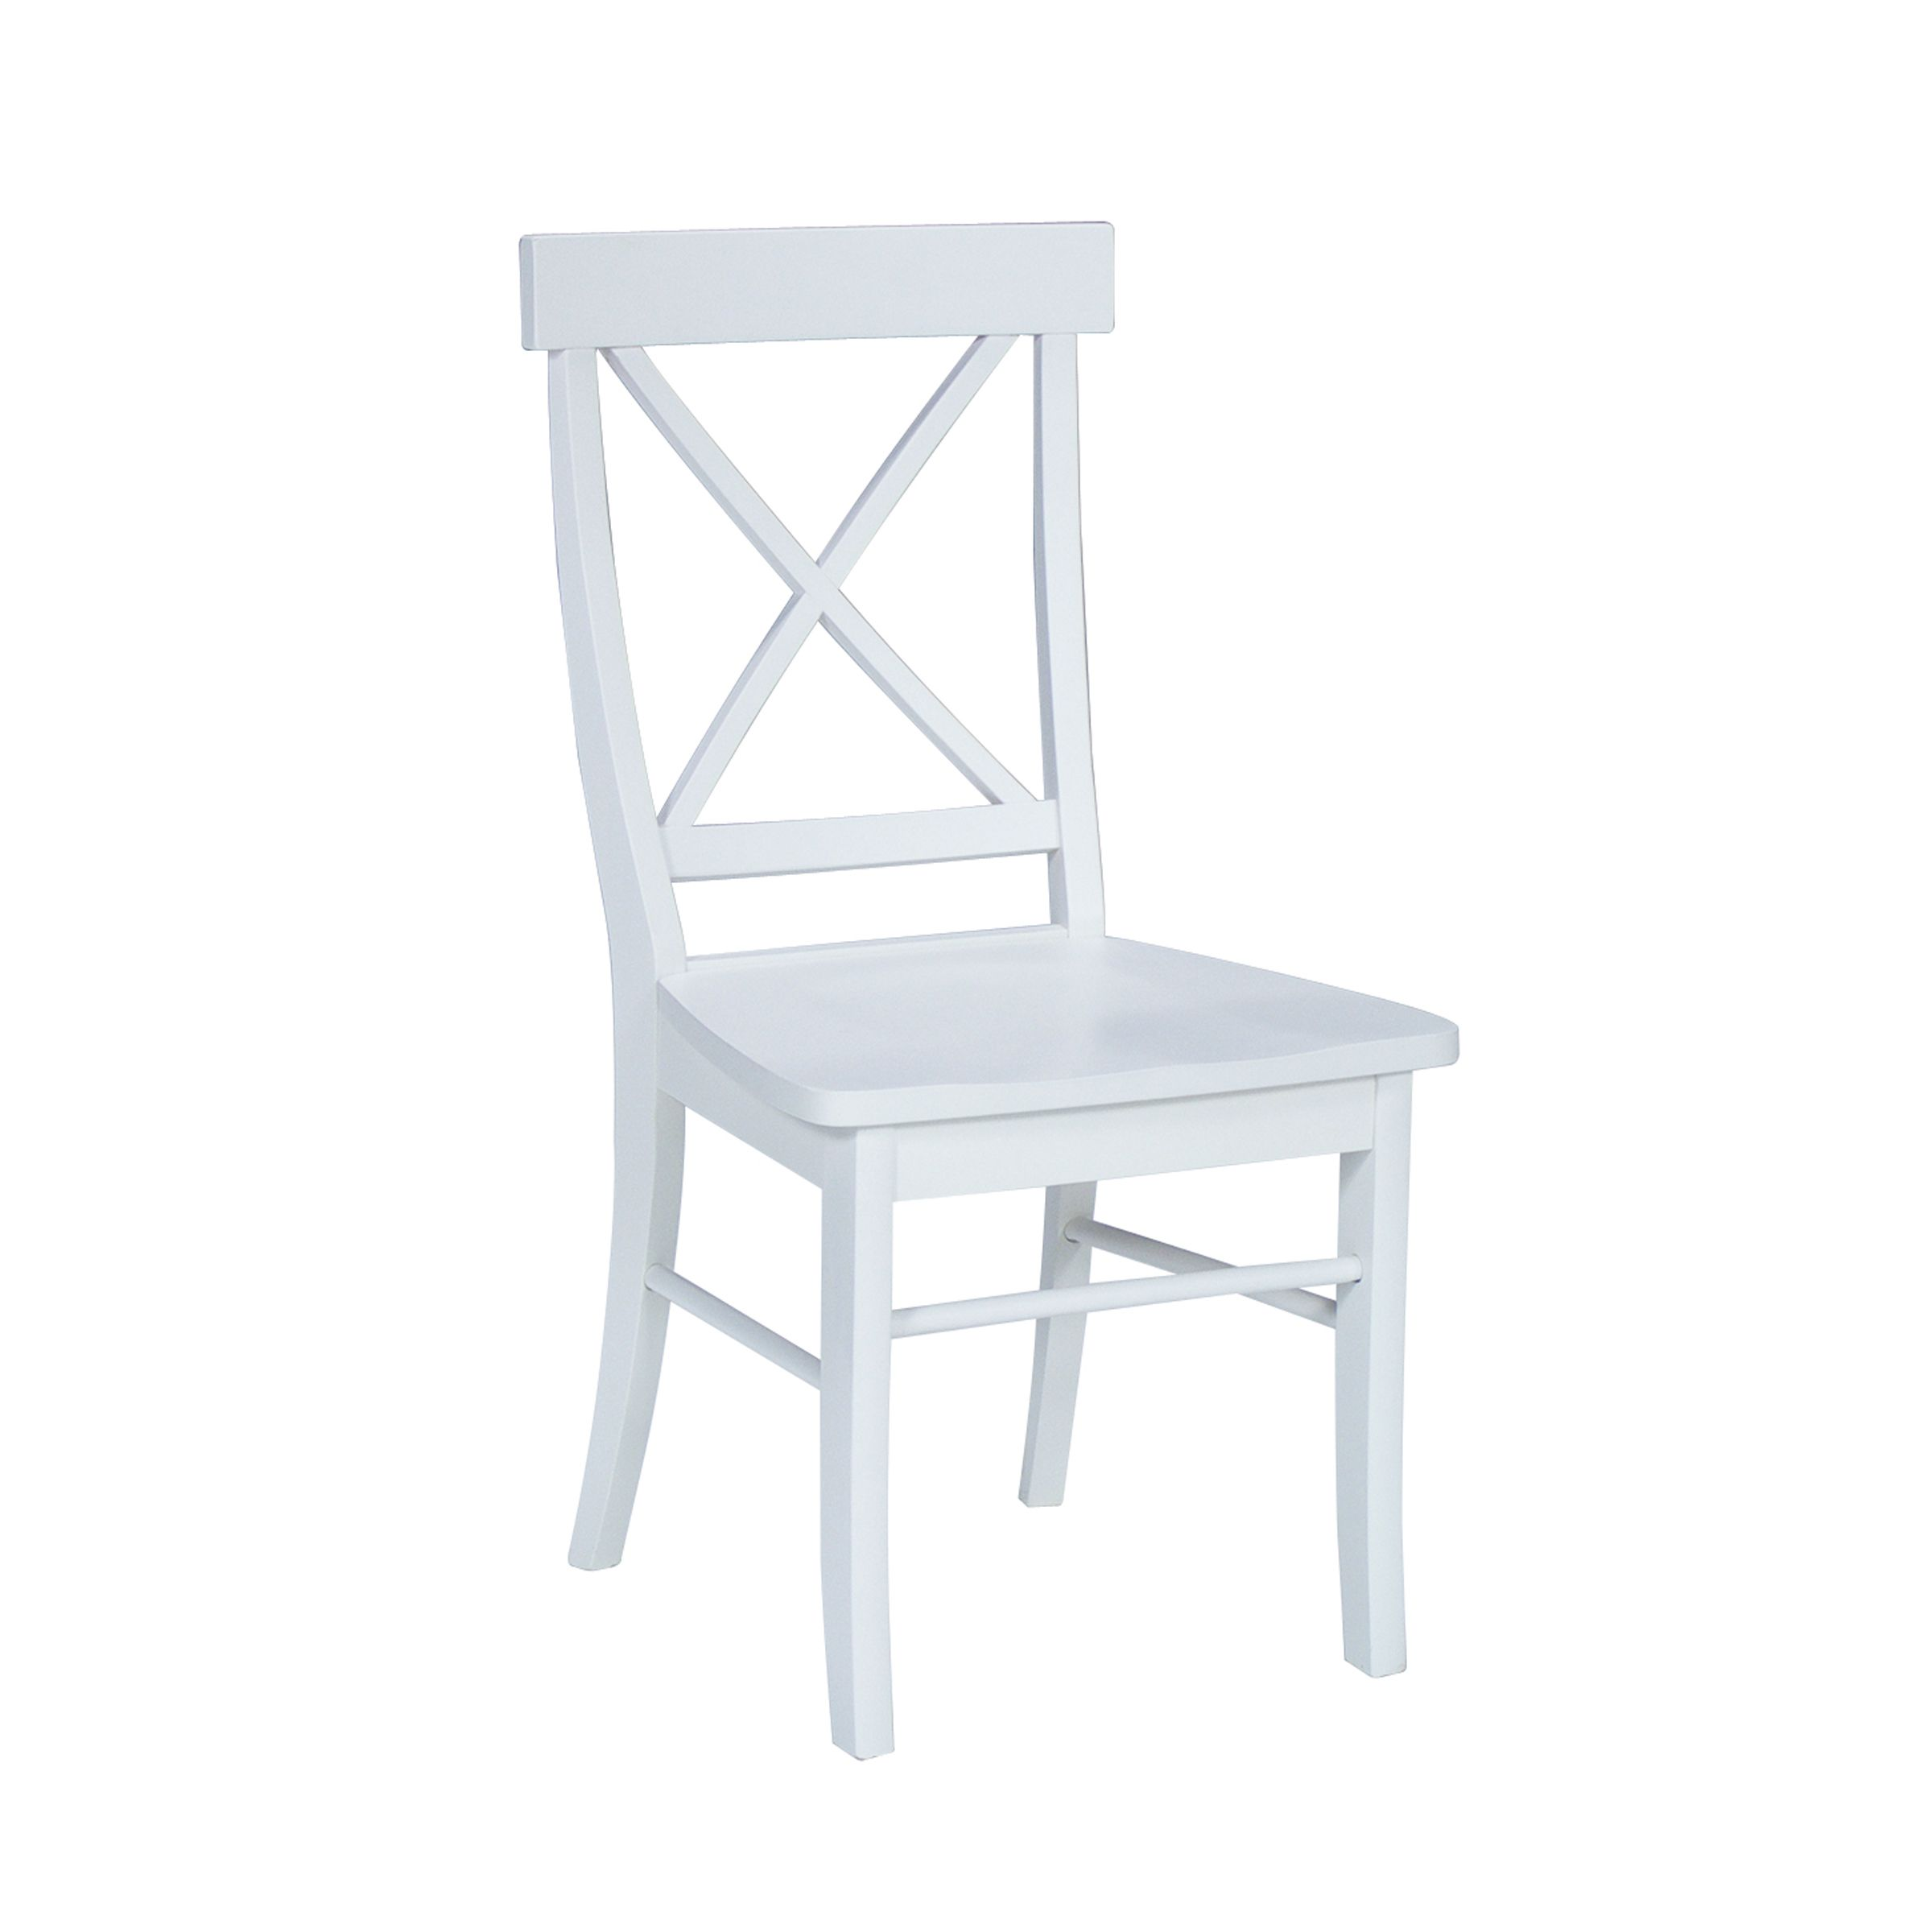 Incroyable International Concepts Pair Of X Back Chair With Solid Wood Seat. Black ·  Linen White